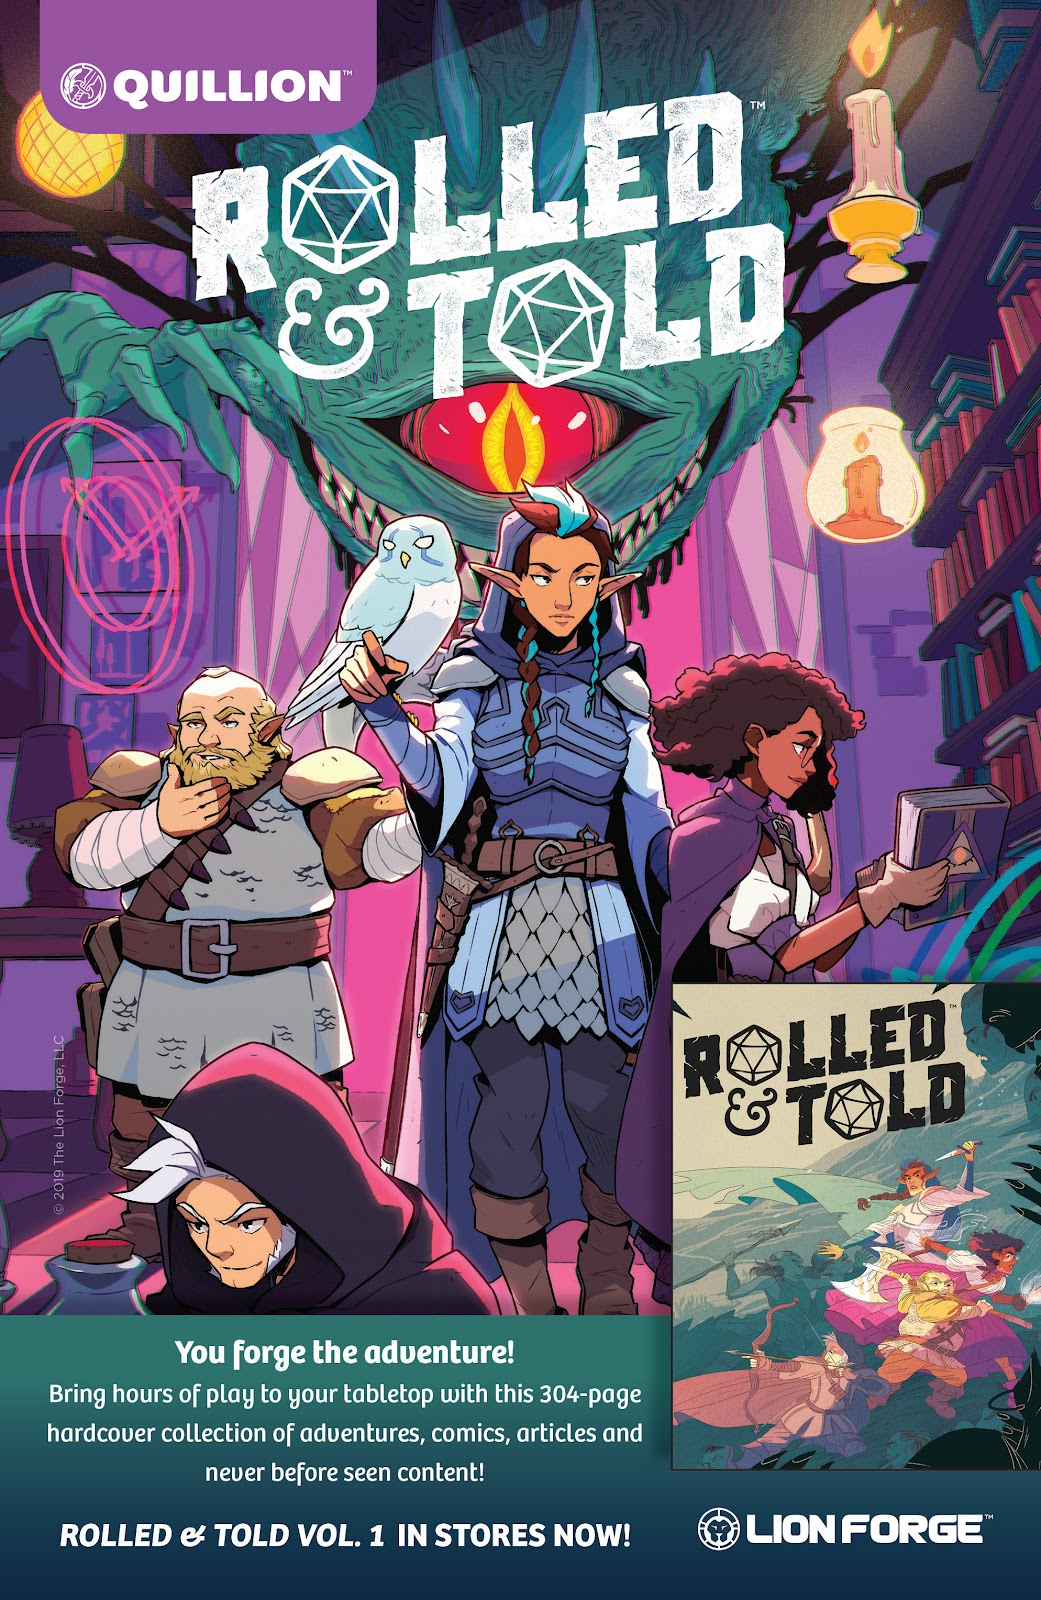 Read online Rolled & Told comic -  Issue #10 - 2